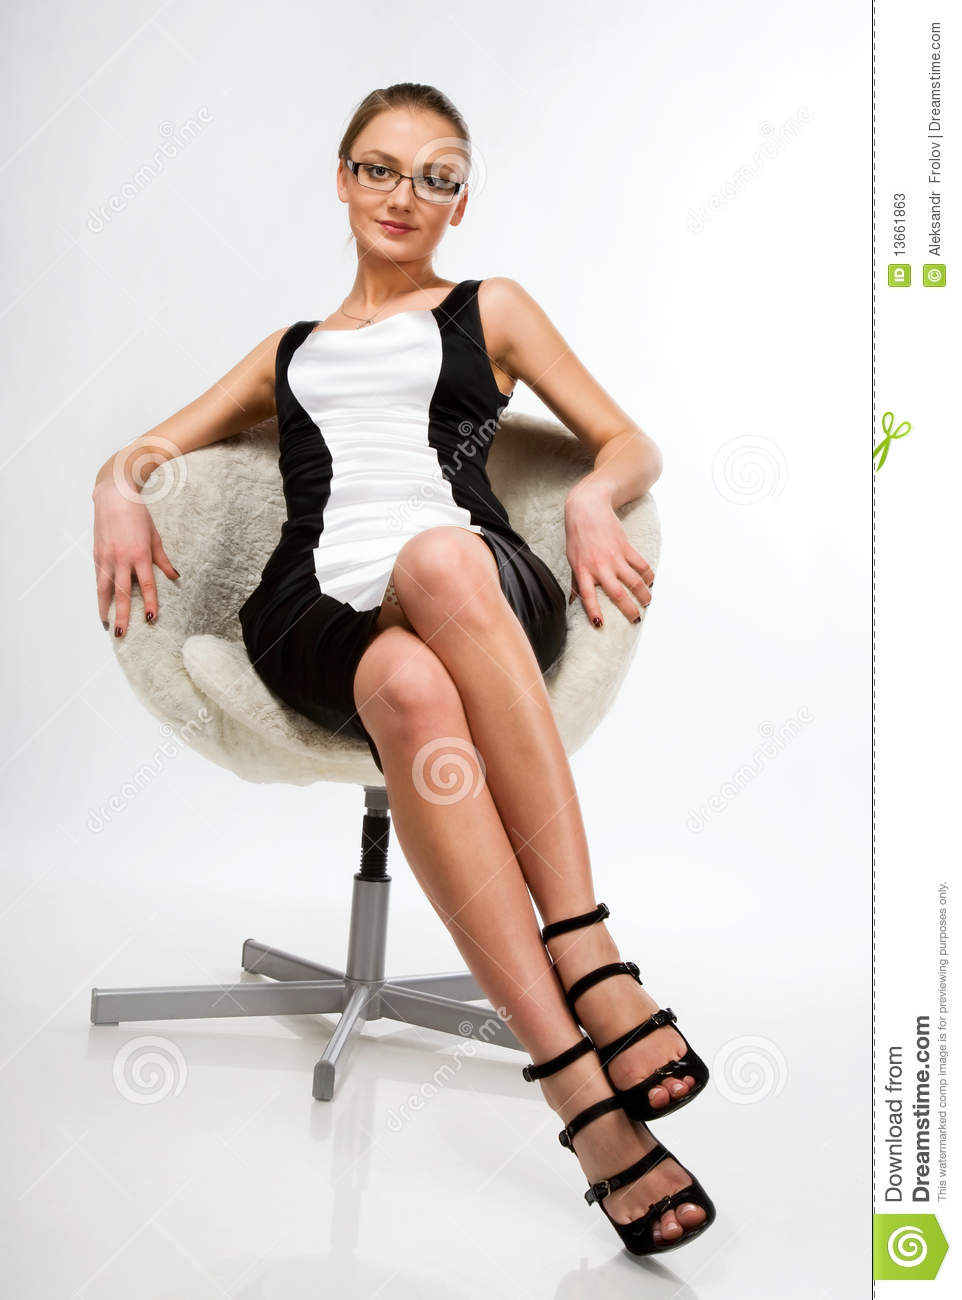 A Beautiful Girl Sitting On A Chair Stock Photos Image